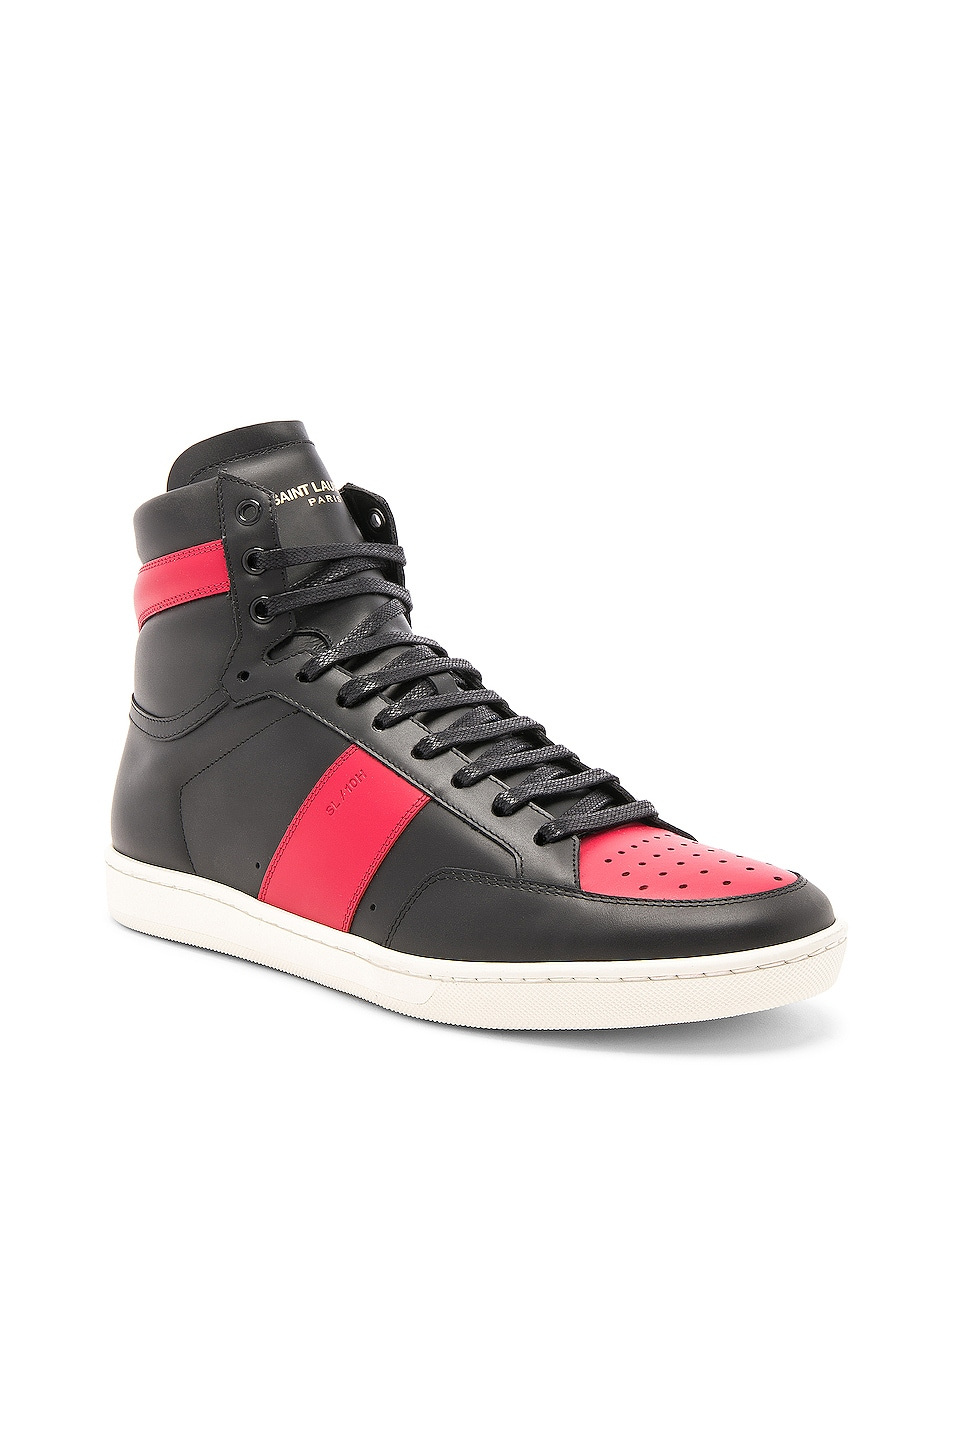 Image 2 of Saint Laurent Signature Court Classic SL/10H Leather High Top Sneakers in Black & Red